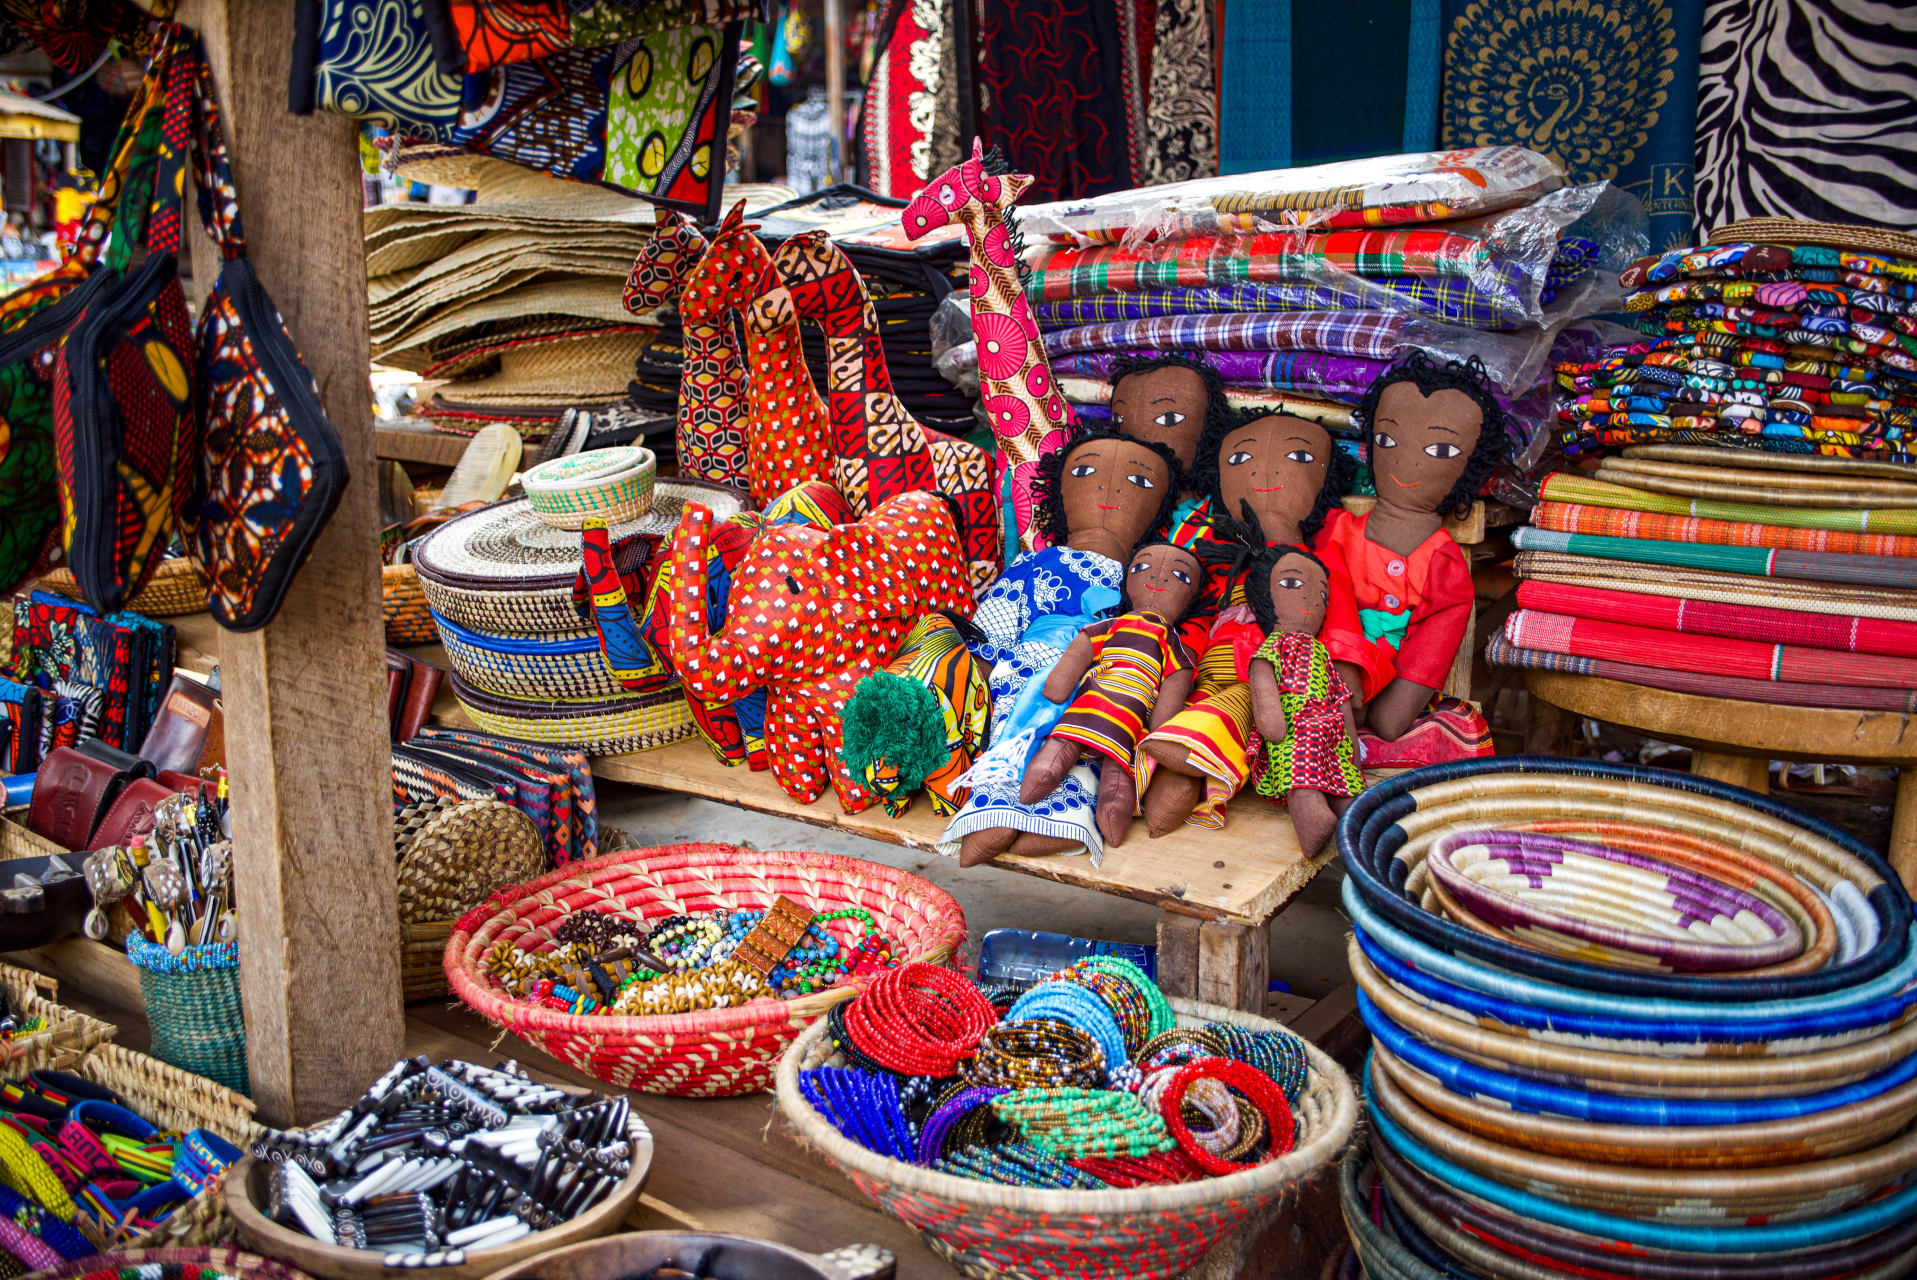 Kampala - The African Village: Buy Your African Arts, Crafts & Souvenirs